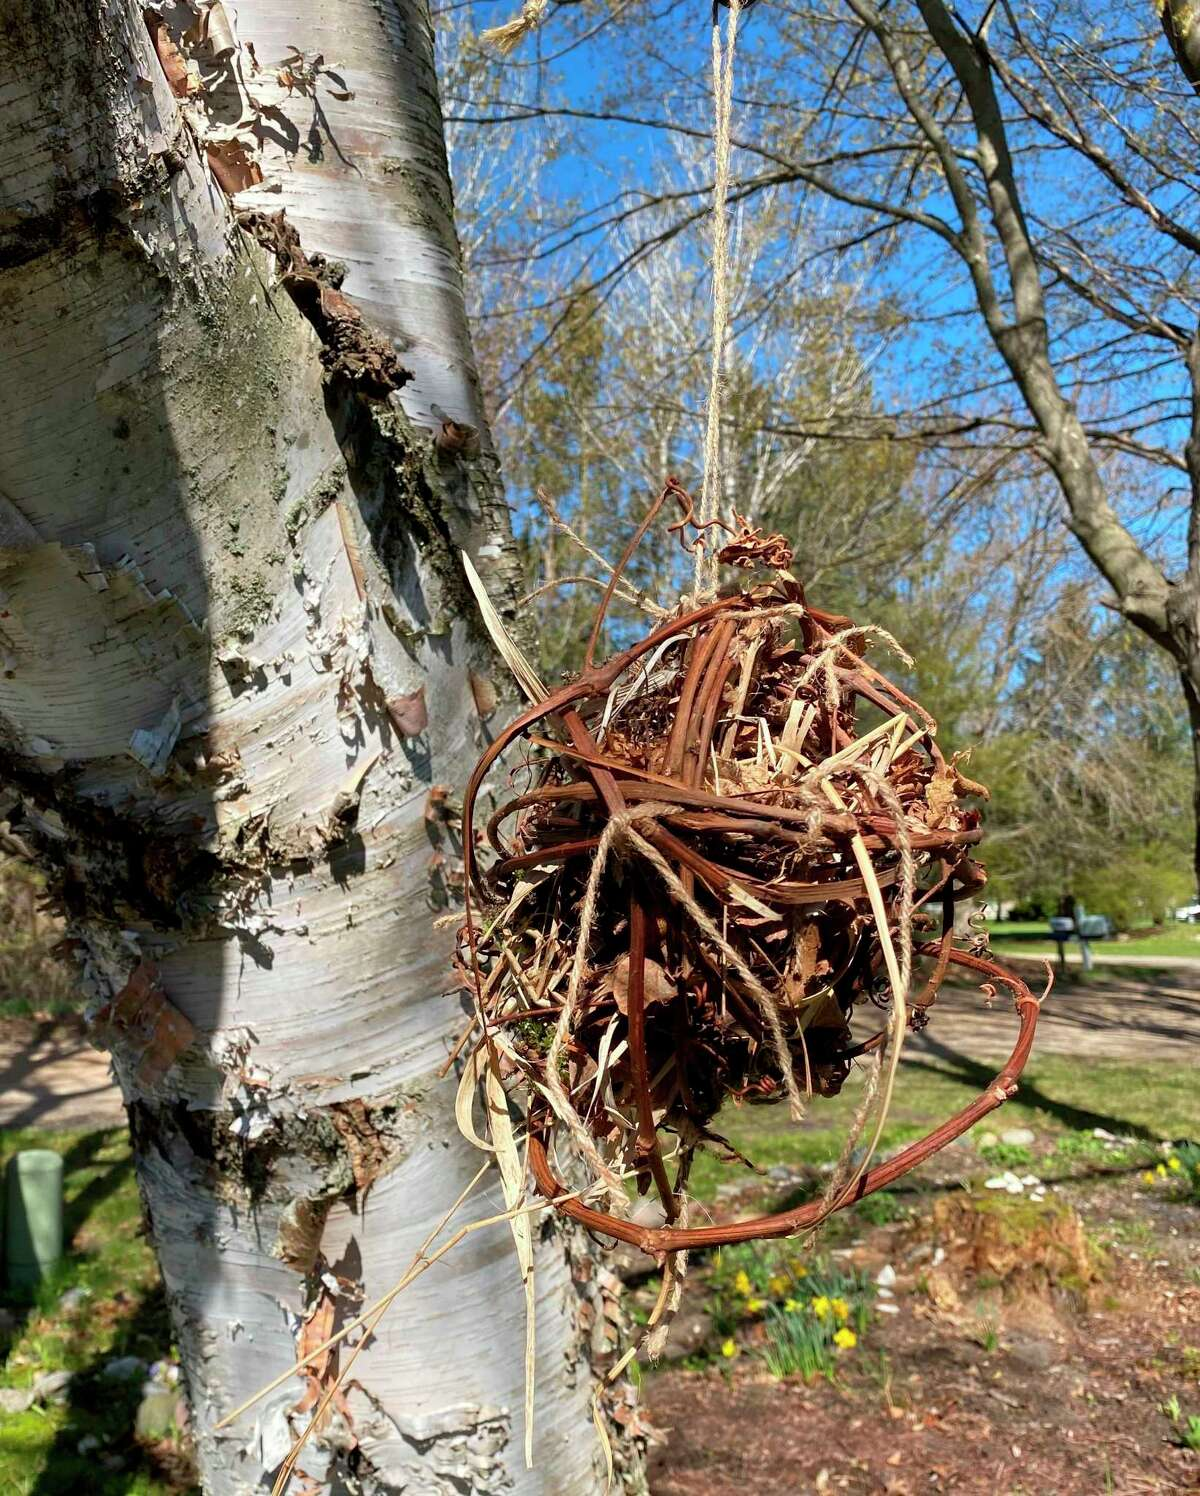 Nesting balls for birdsare filled globes made ofgrape vines with things that birds can use to build their nests.The Armory Youth Project (AYP) and the Spirit of the Woods Garden Club, Inc. are partneringfor a Youth Gardening Program; during the first meeting participants made nesting balls. (Courtesy photo)